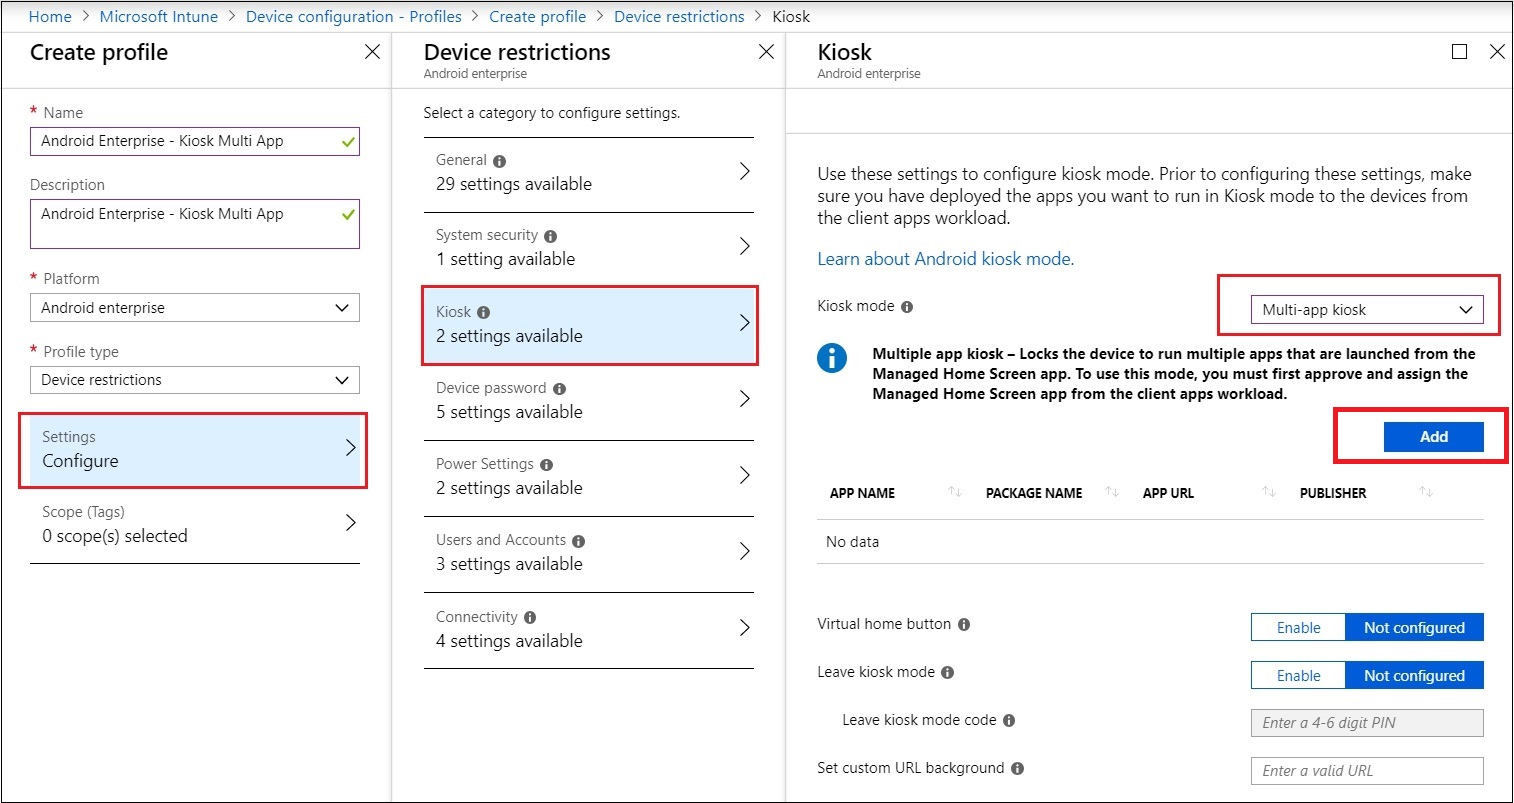 How to configure an Android device in Multi App Kiosk mode with